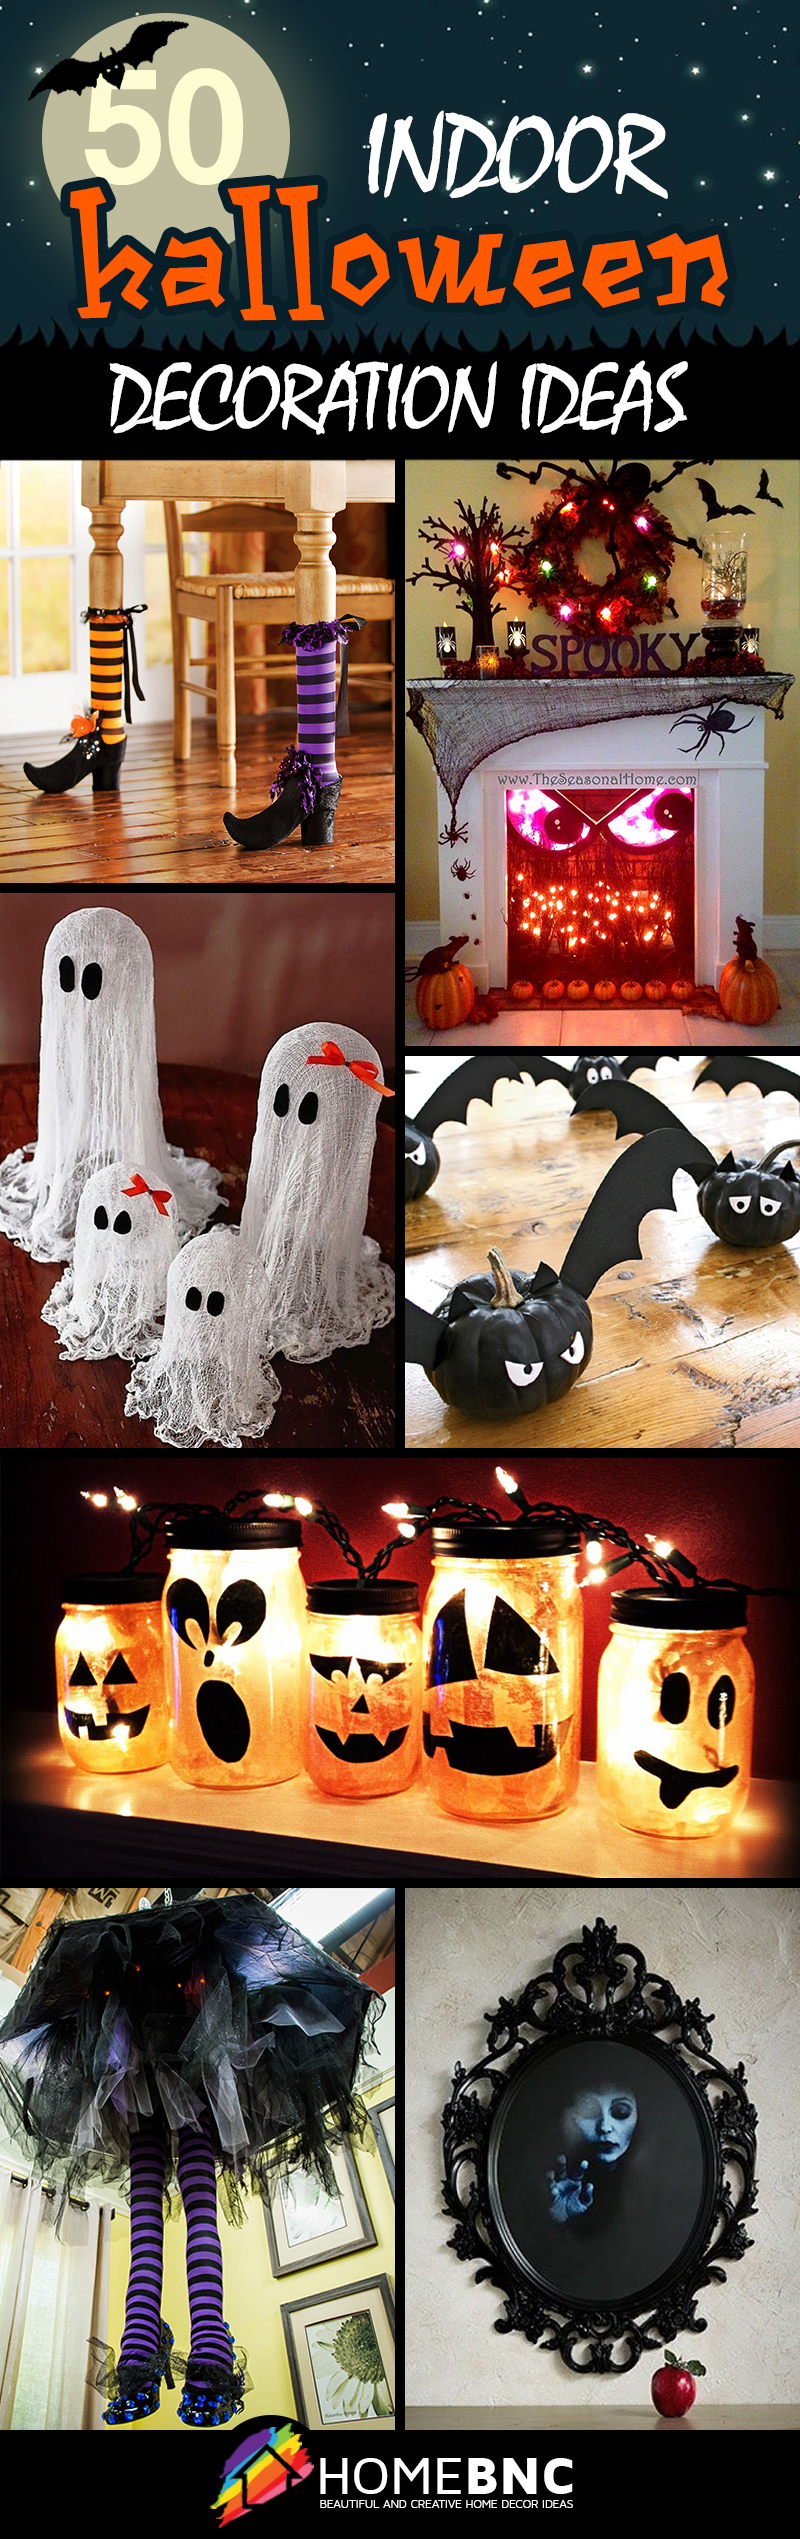 indoor halloween decoration ideas - Halloween Decoration Pictures